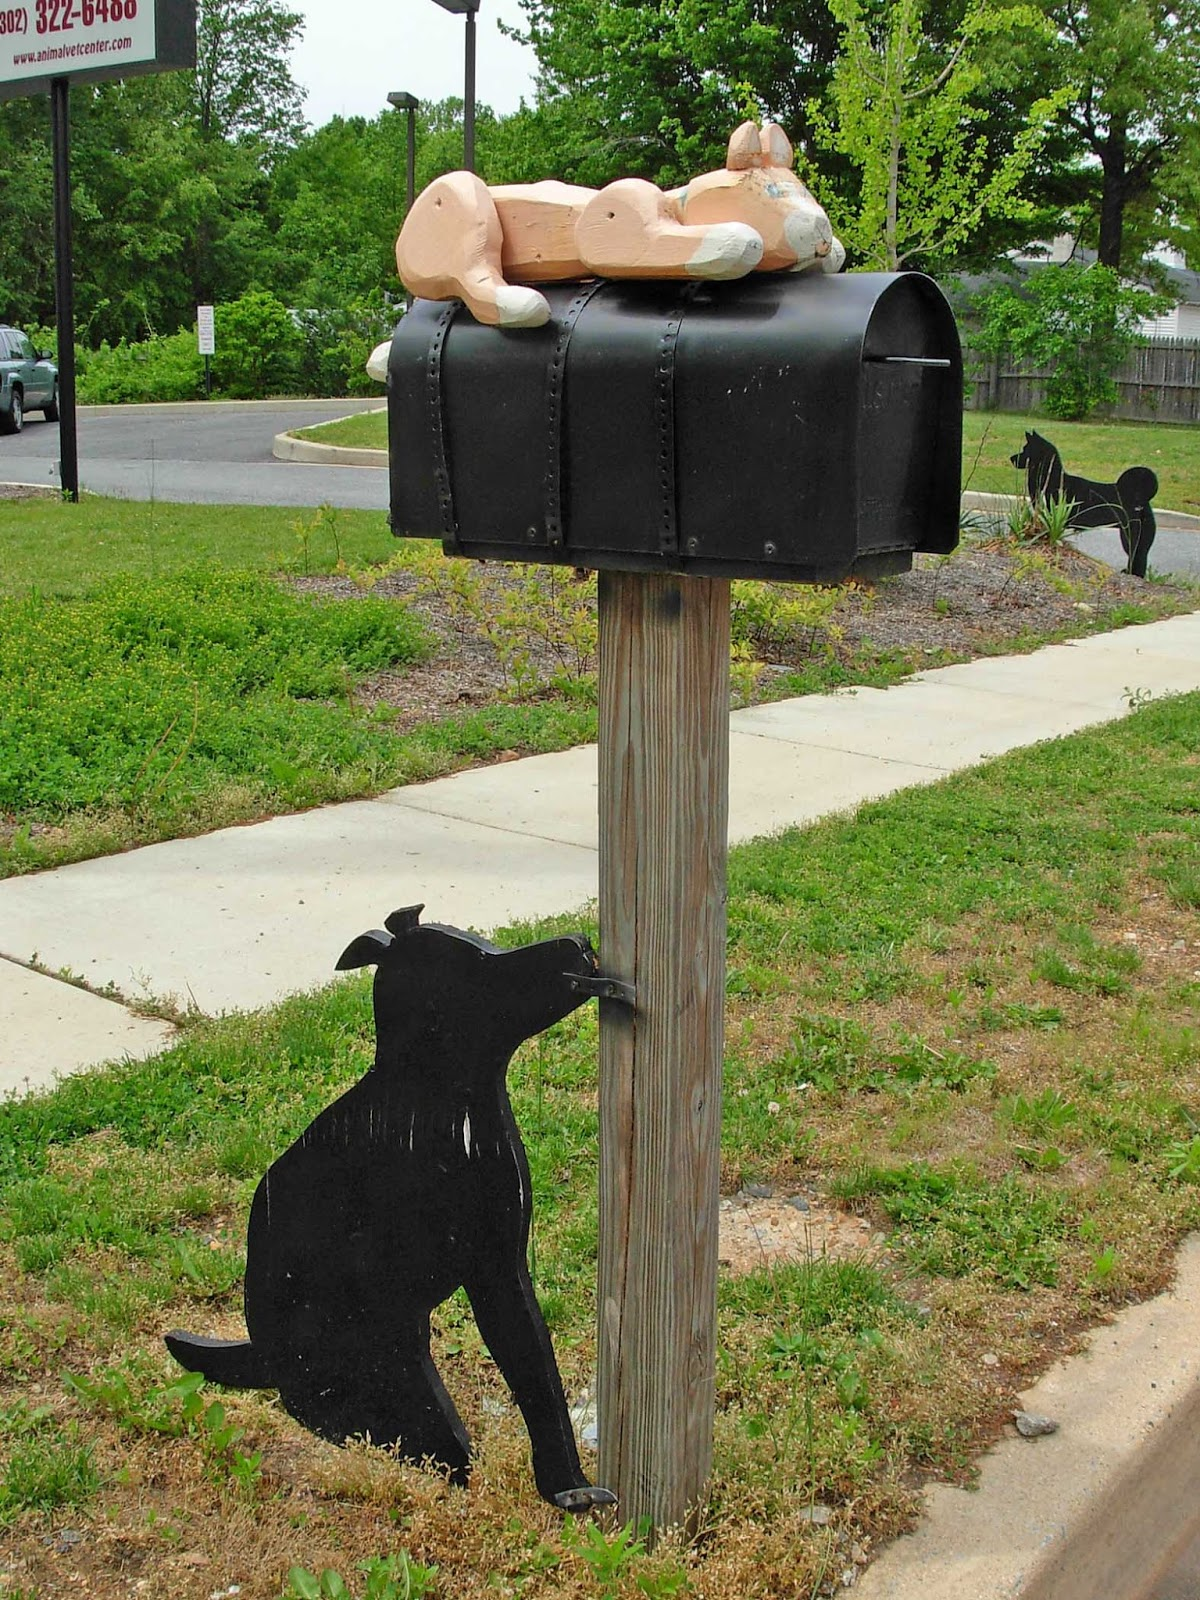 geographically yours bear delaware usa